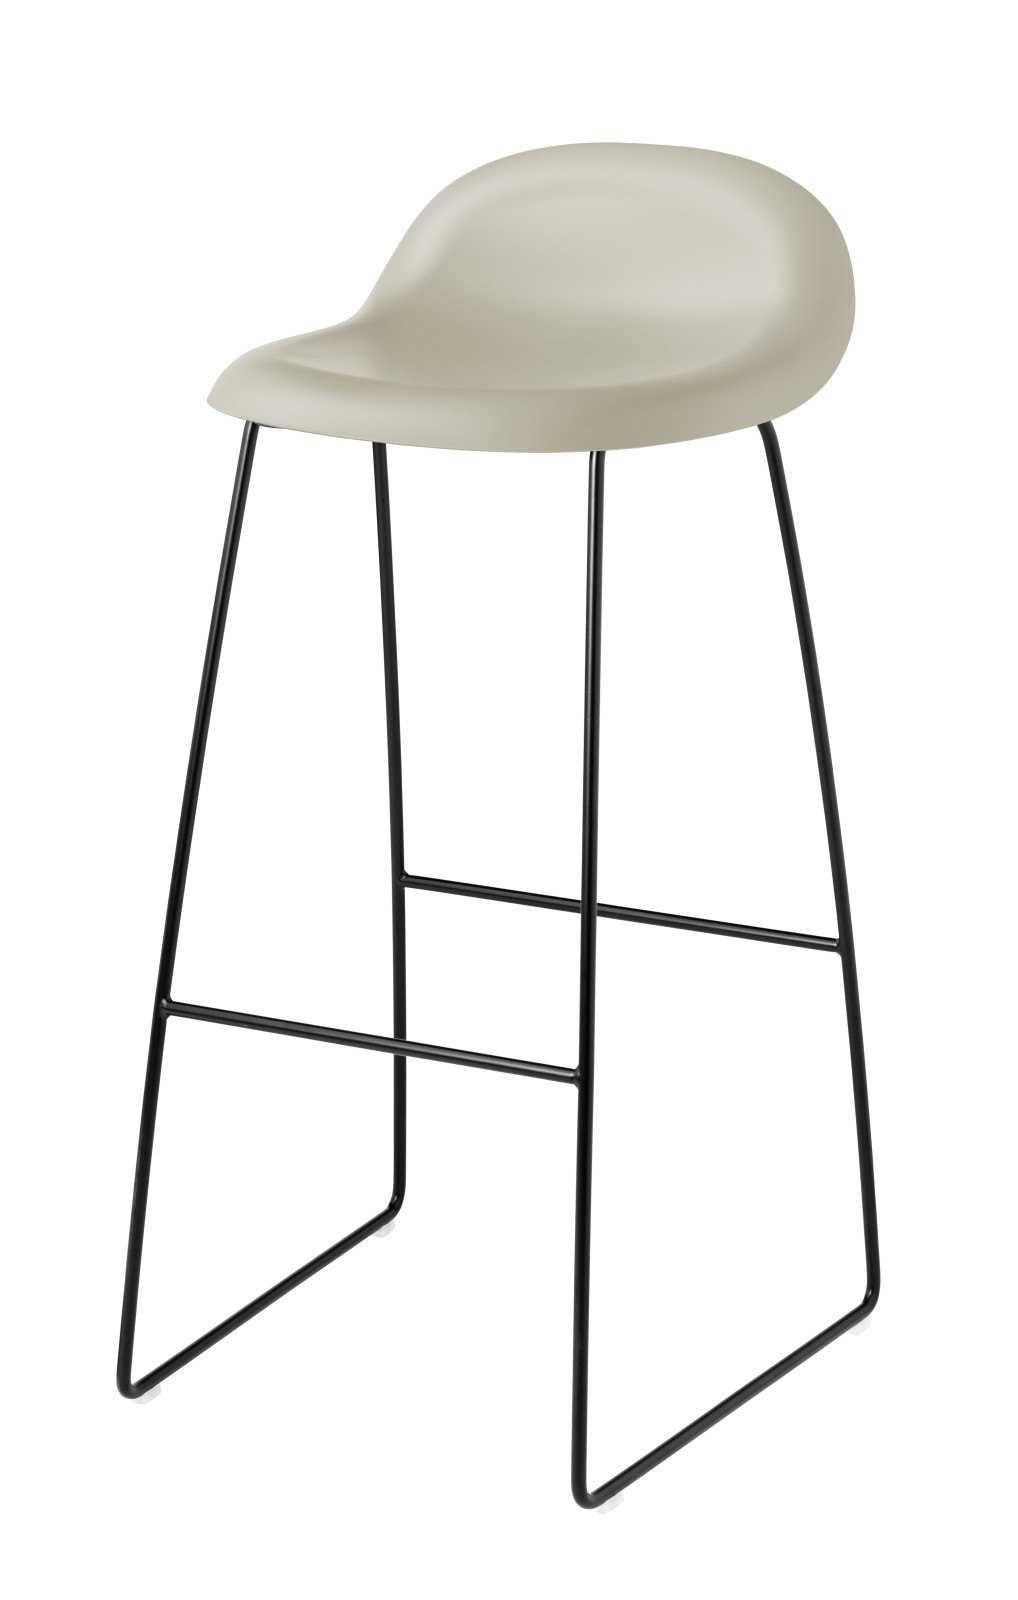 Gubi 3D Sledge Base Bar Stool - Unupholstered Gubi HiRek White Cloud, Gubi Metal Black